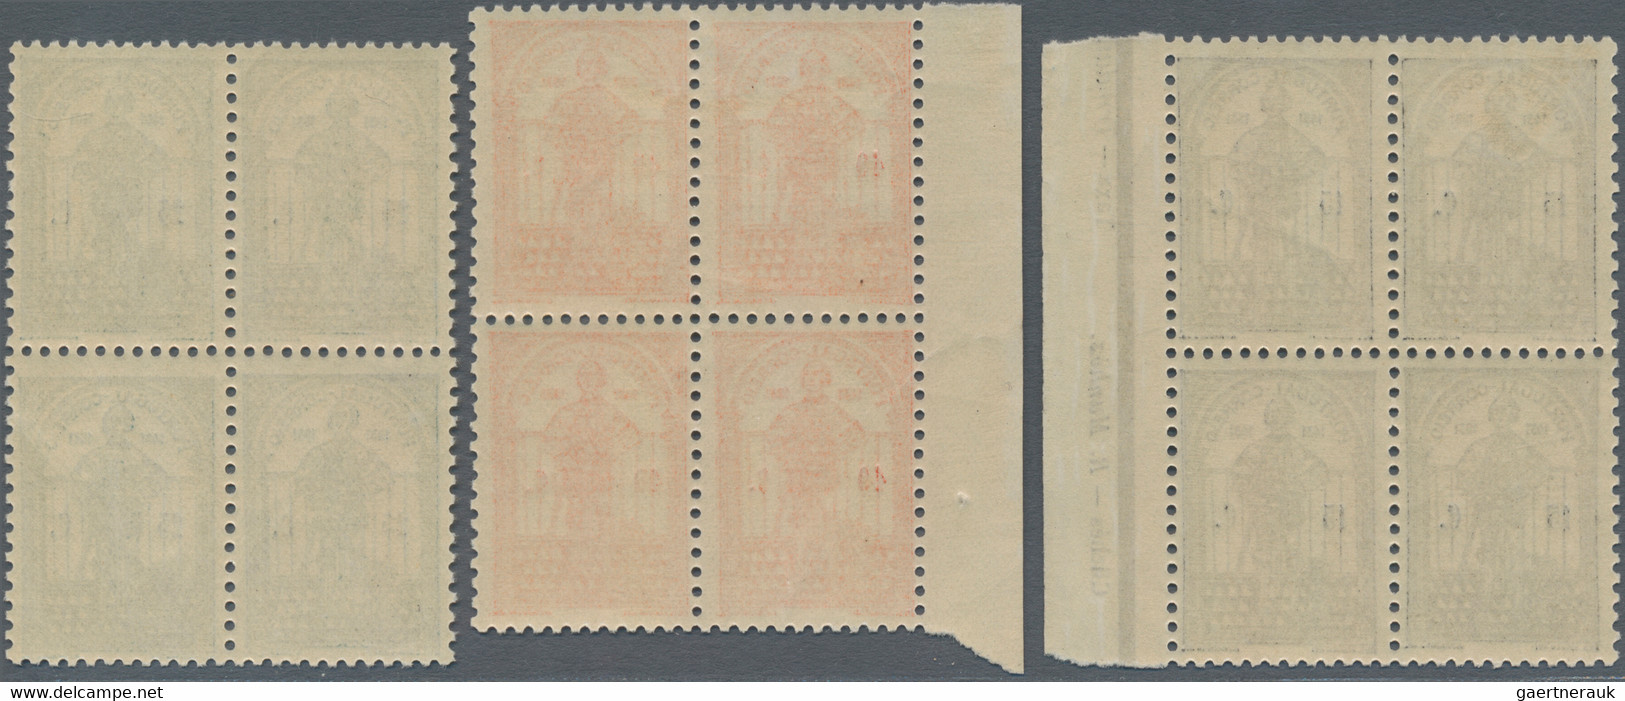 Portugal: 1931, Dum Nuno Álavrez, Complete Set Of Six Stamps, Each In Blocks Of Four, Two With A Mar - Nuevos